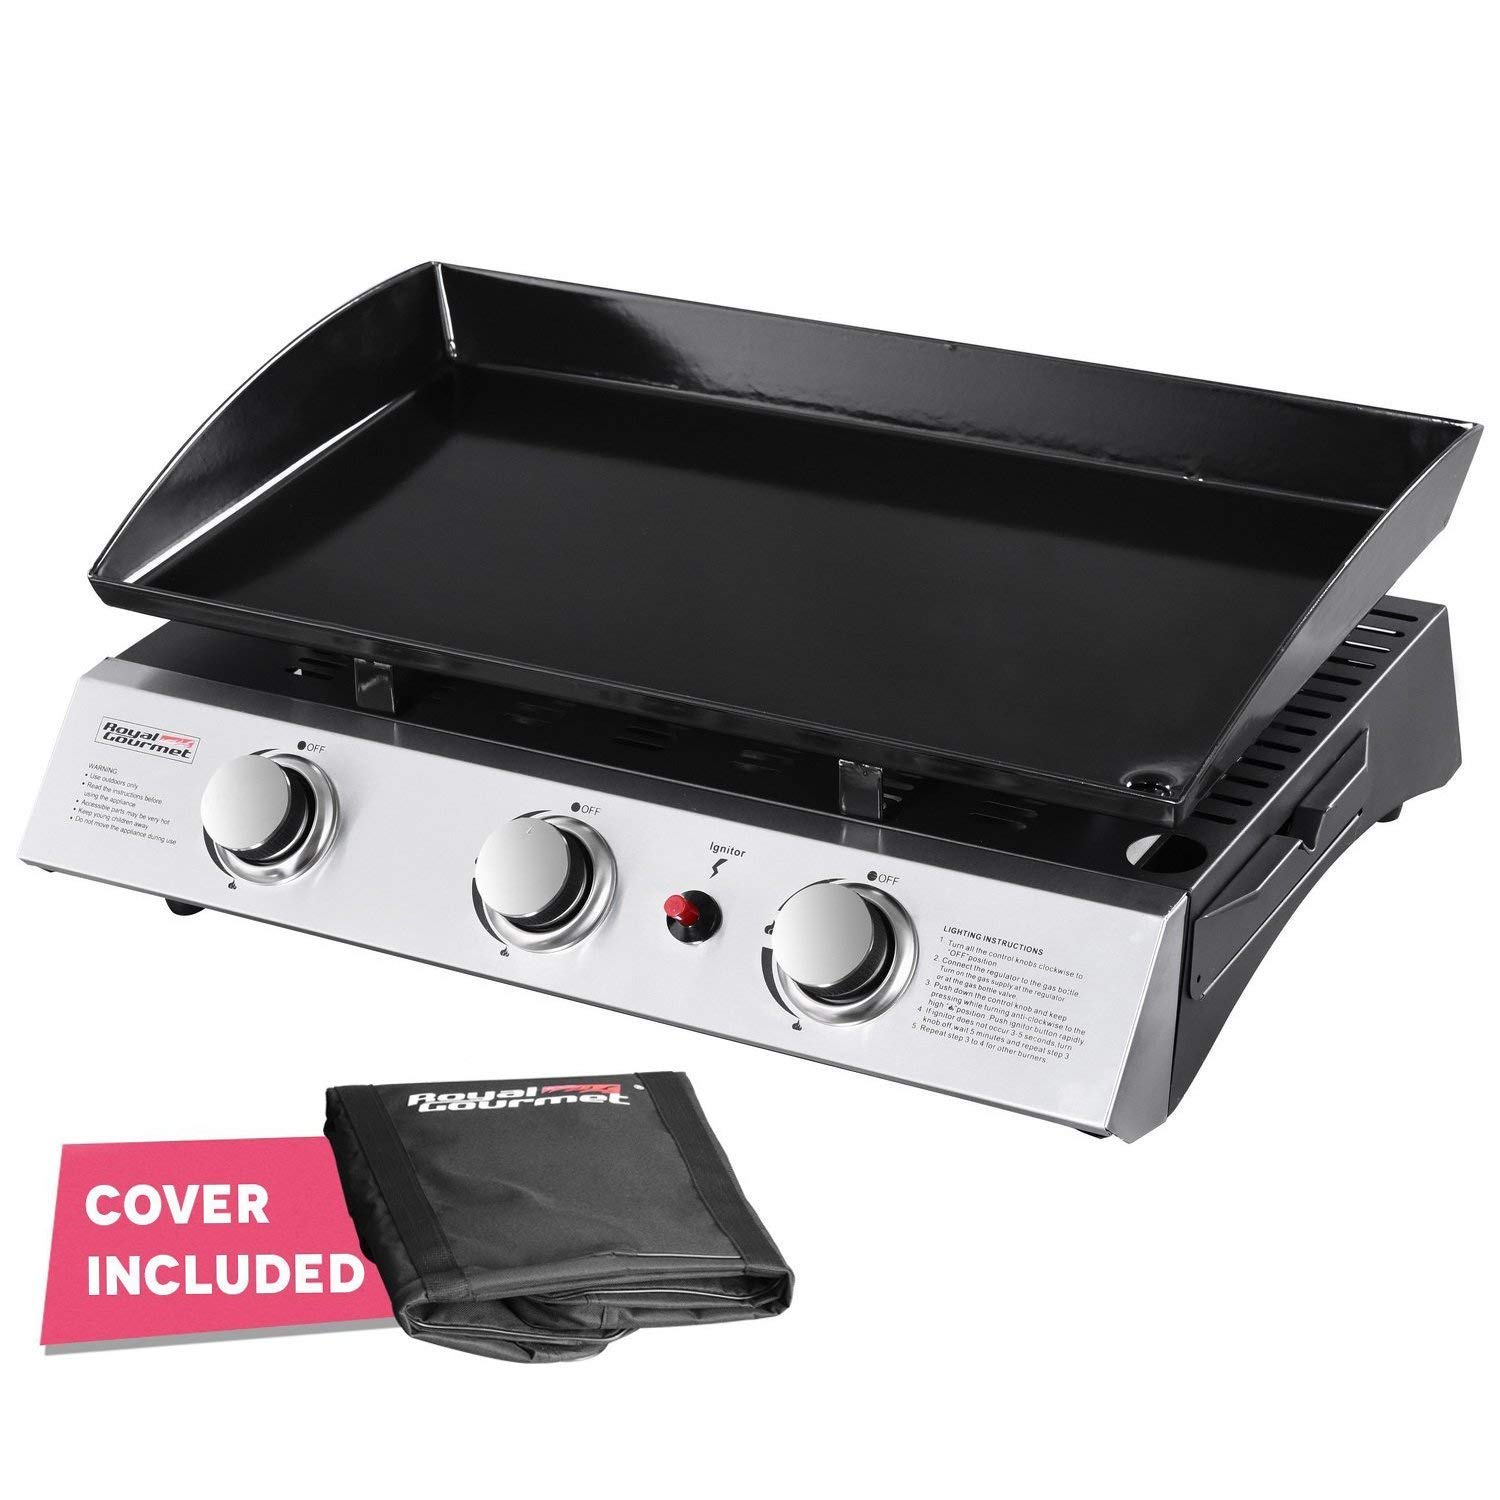 Royal Gourmet PD1300 Portable 3-Burner Propane Gas Grill Griddle (Renewed) by Royal Gourmet